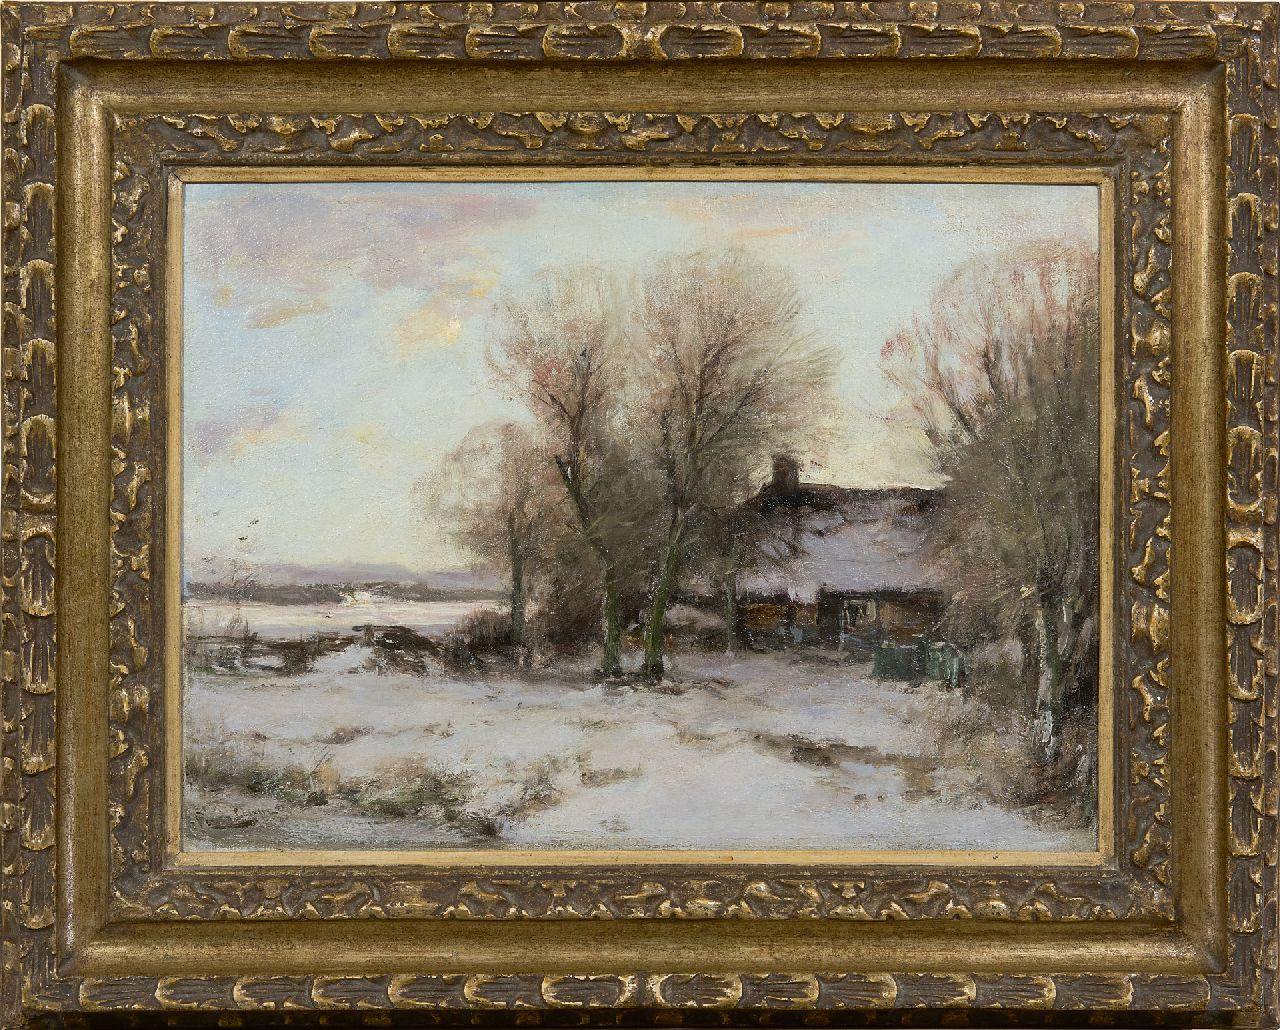 Apol L.F.H.  | Lodewijk Franciscus Hendrik 'Louis' Apol | Paintings offered for sale | Farmhouse in a snowy landscape, oil on canvas 34.3 x 46.2 cm, signed l.l.